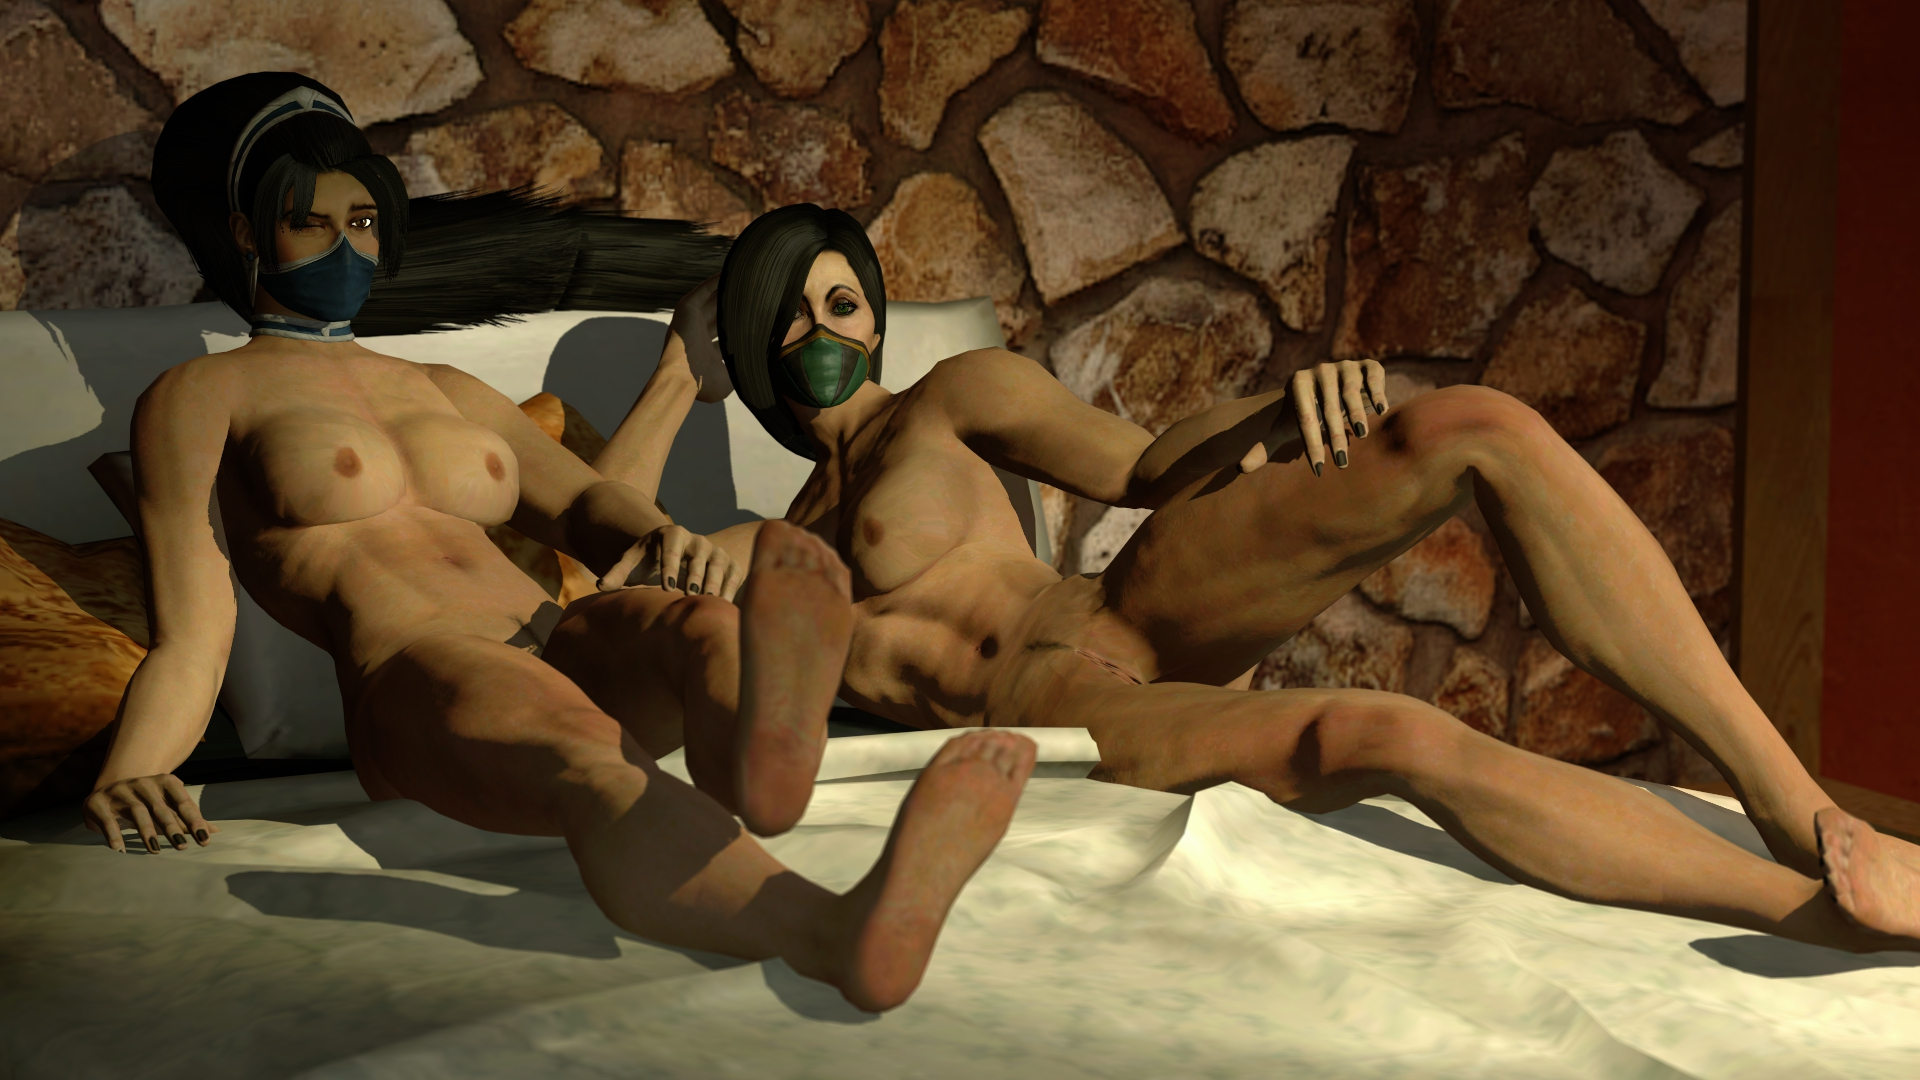 Gmod sex models sex galleries